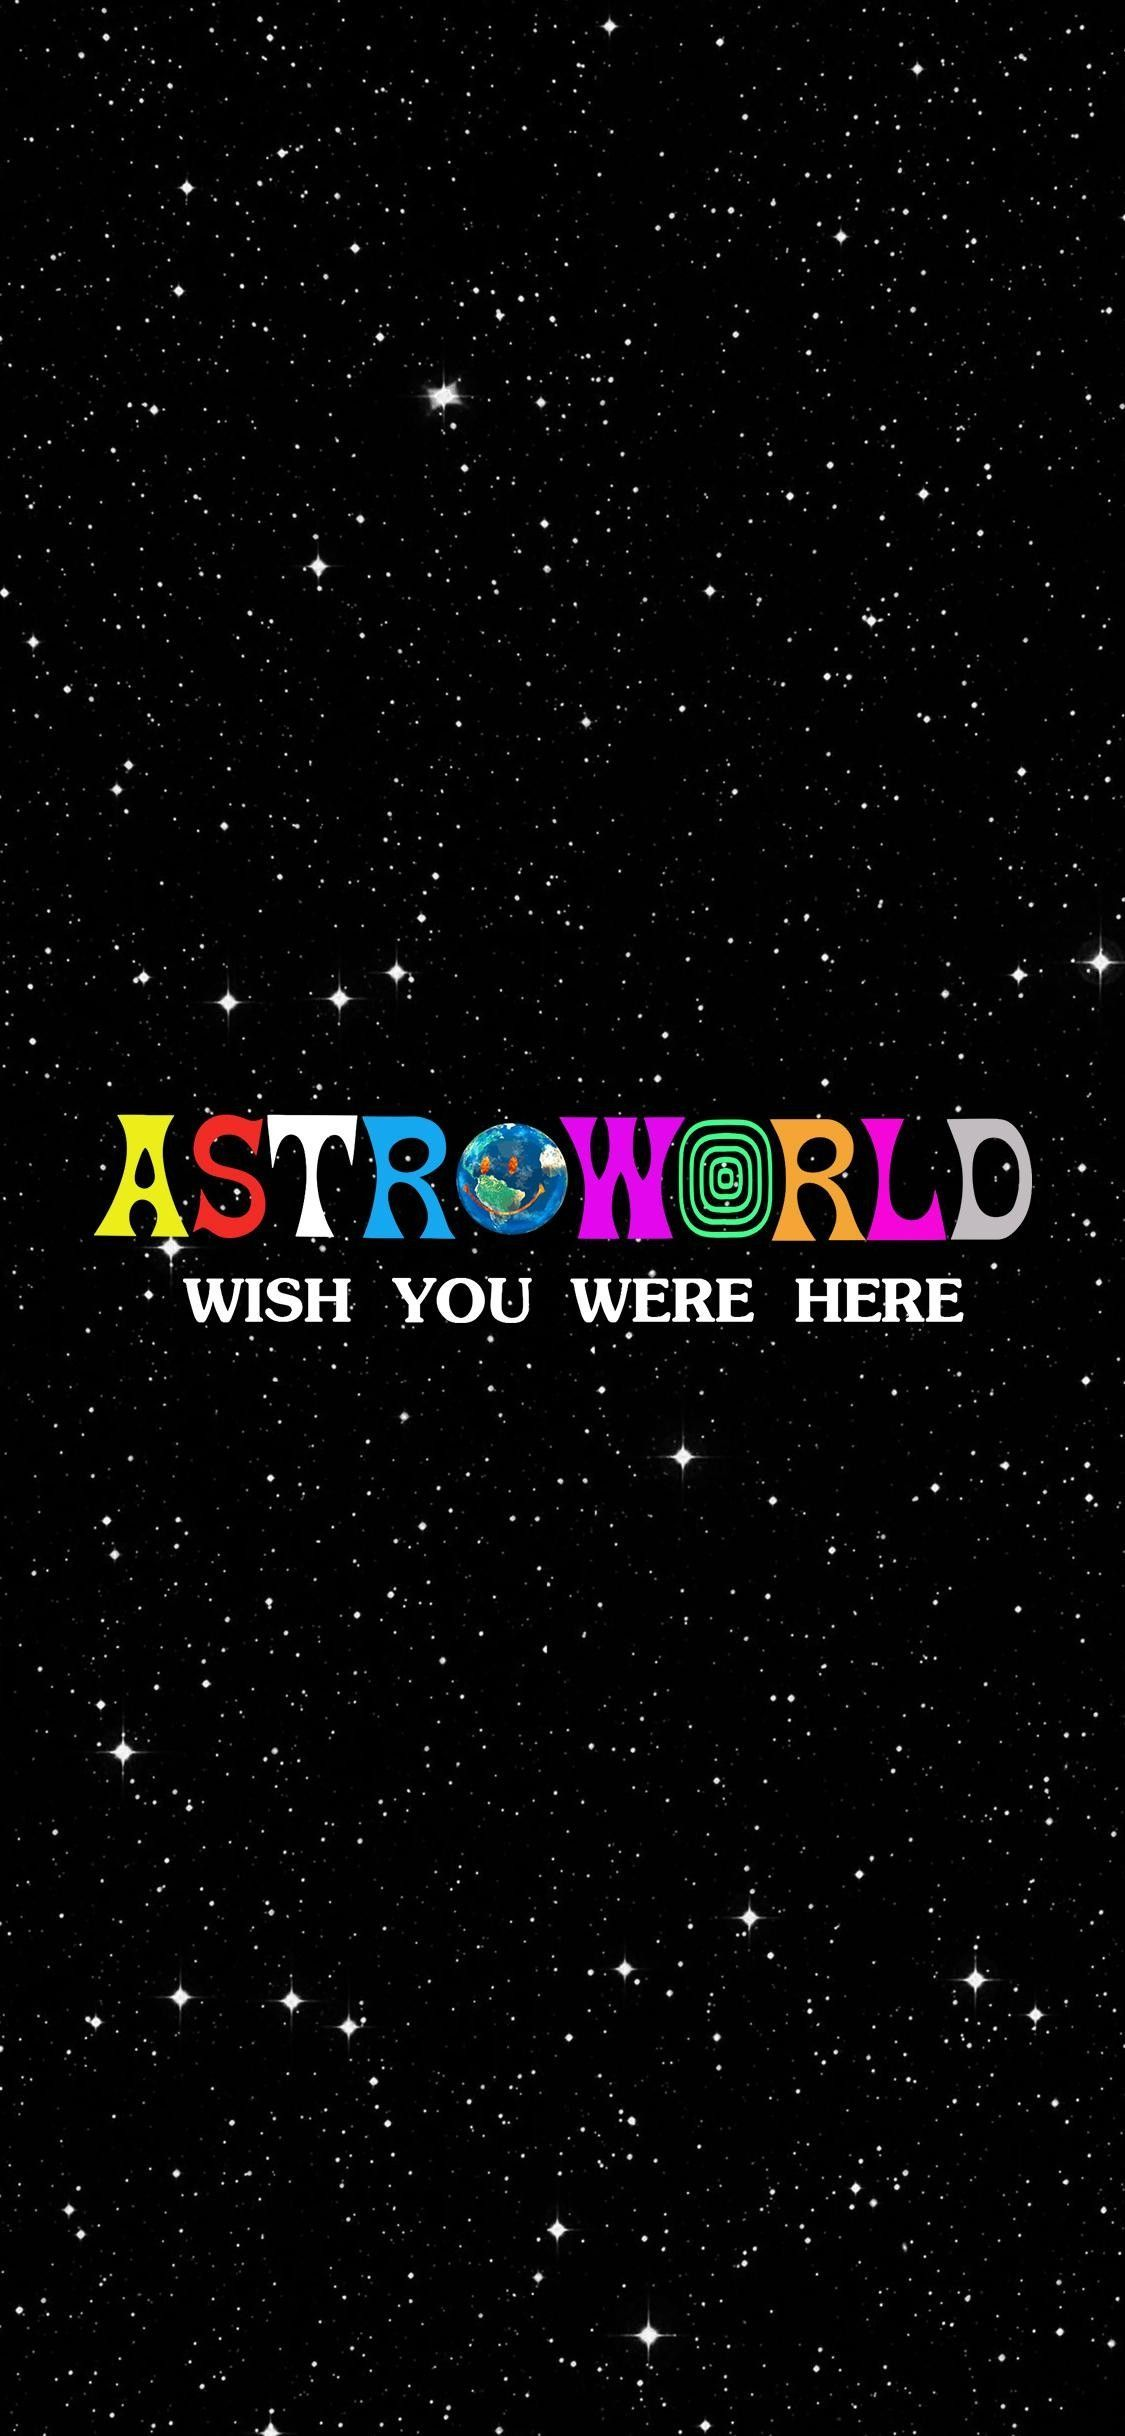 ASTROWORLD Wallpaper travisscottwallpapers in 2020 Painting 1125x2436